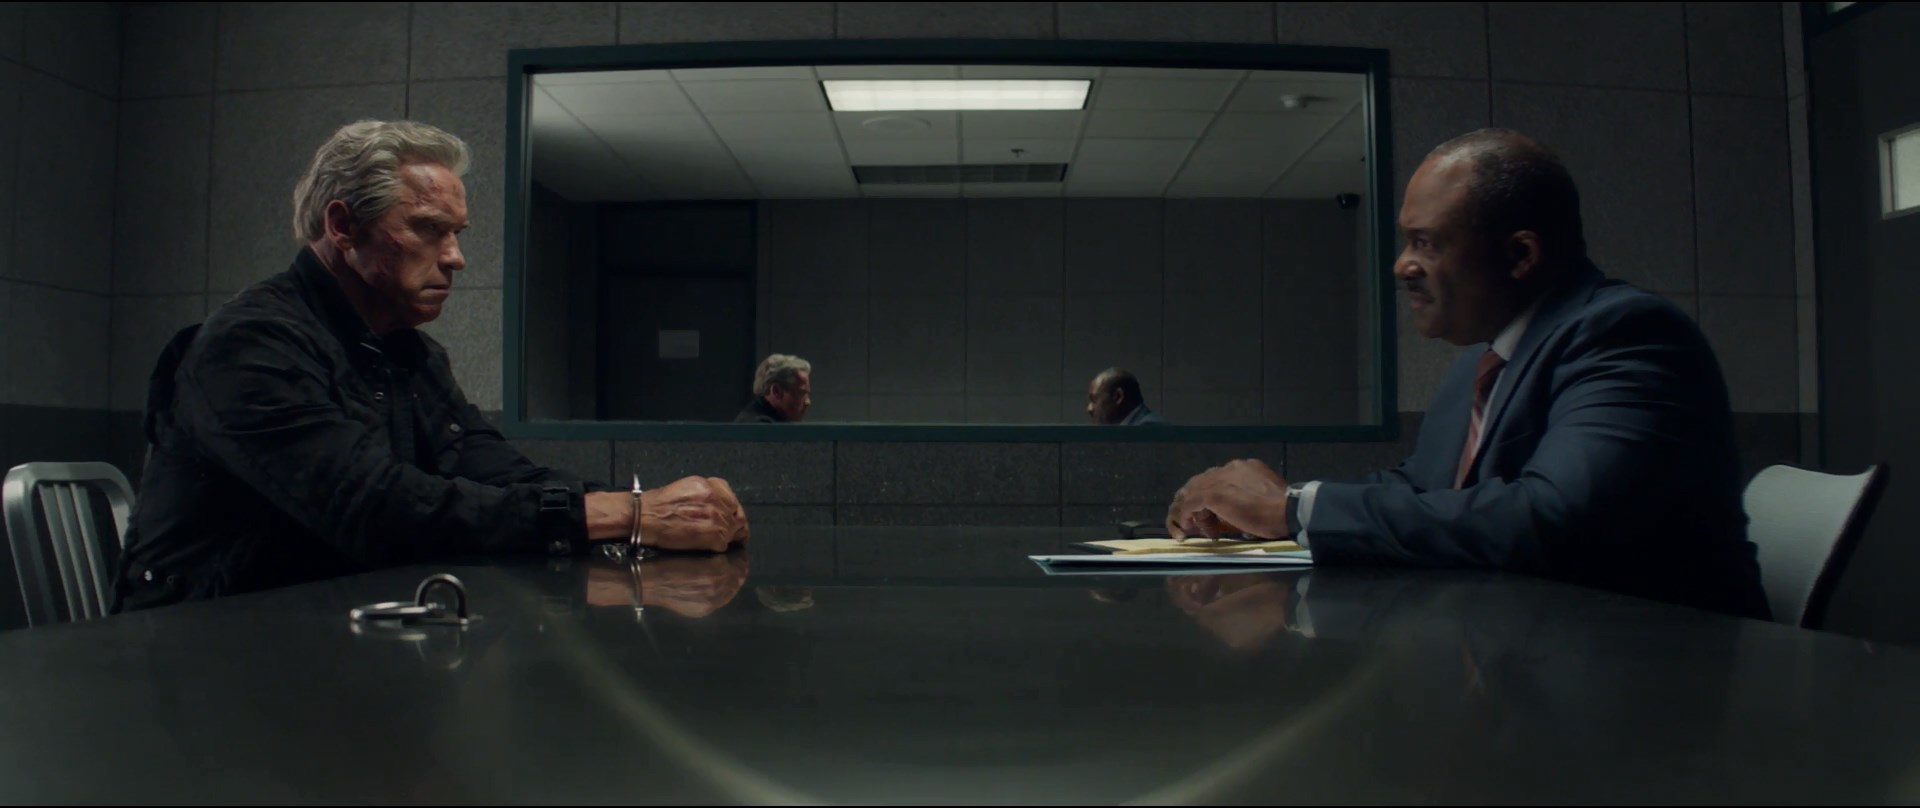 File:Tg-pops-film-harding-interrogation.jpg